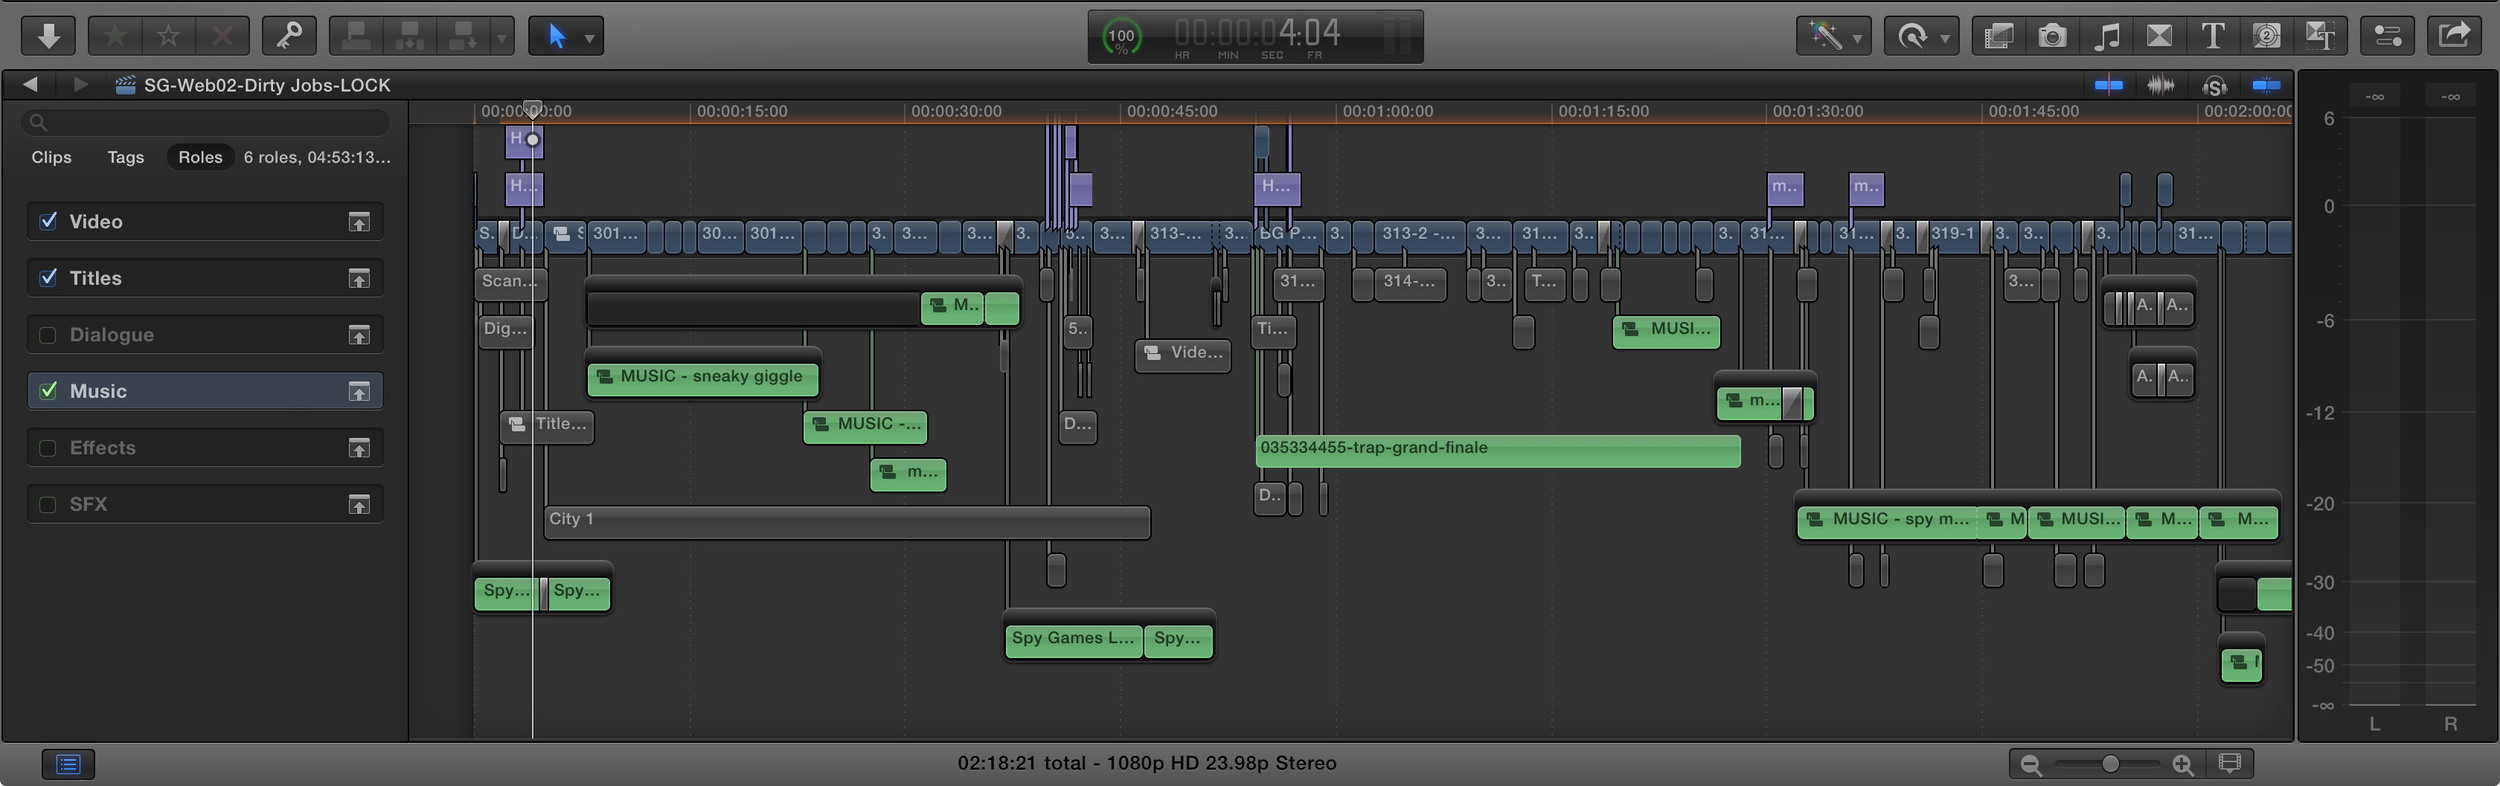 Keeping your roles tidy will help you immensely You'll also notice the use of compound clips for music tracks.